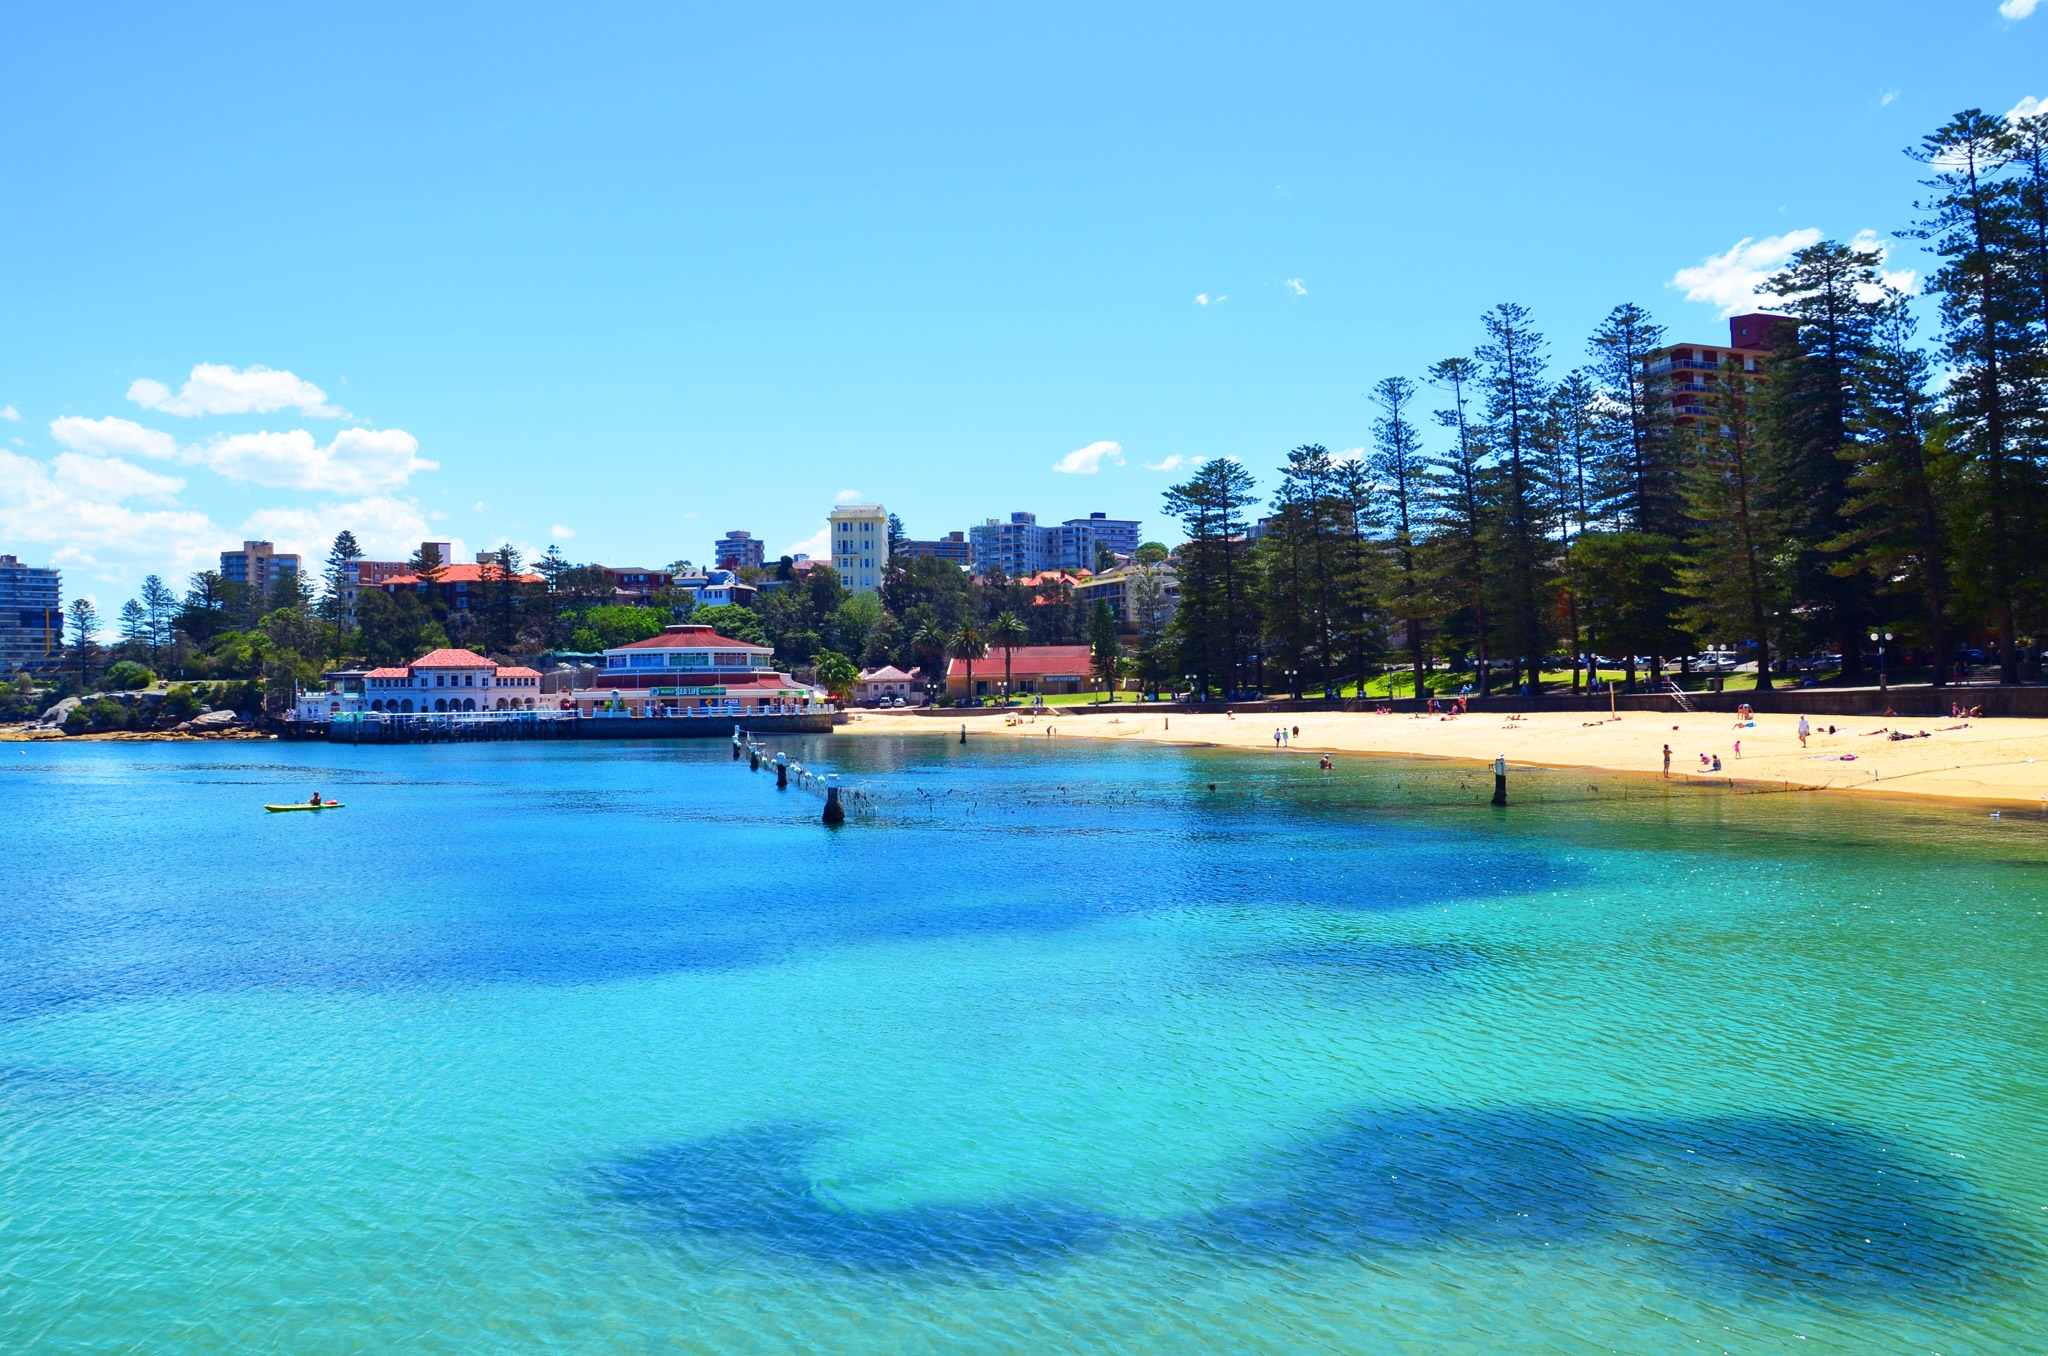 Manly Cove - Image �2014 ManlyAustralia.com